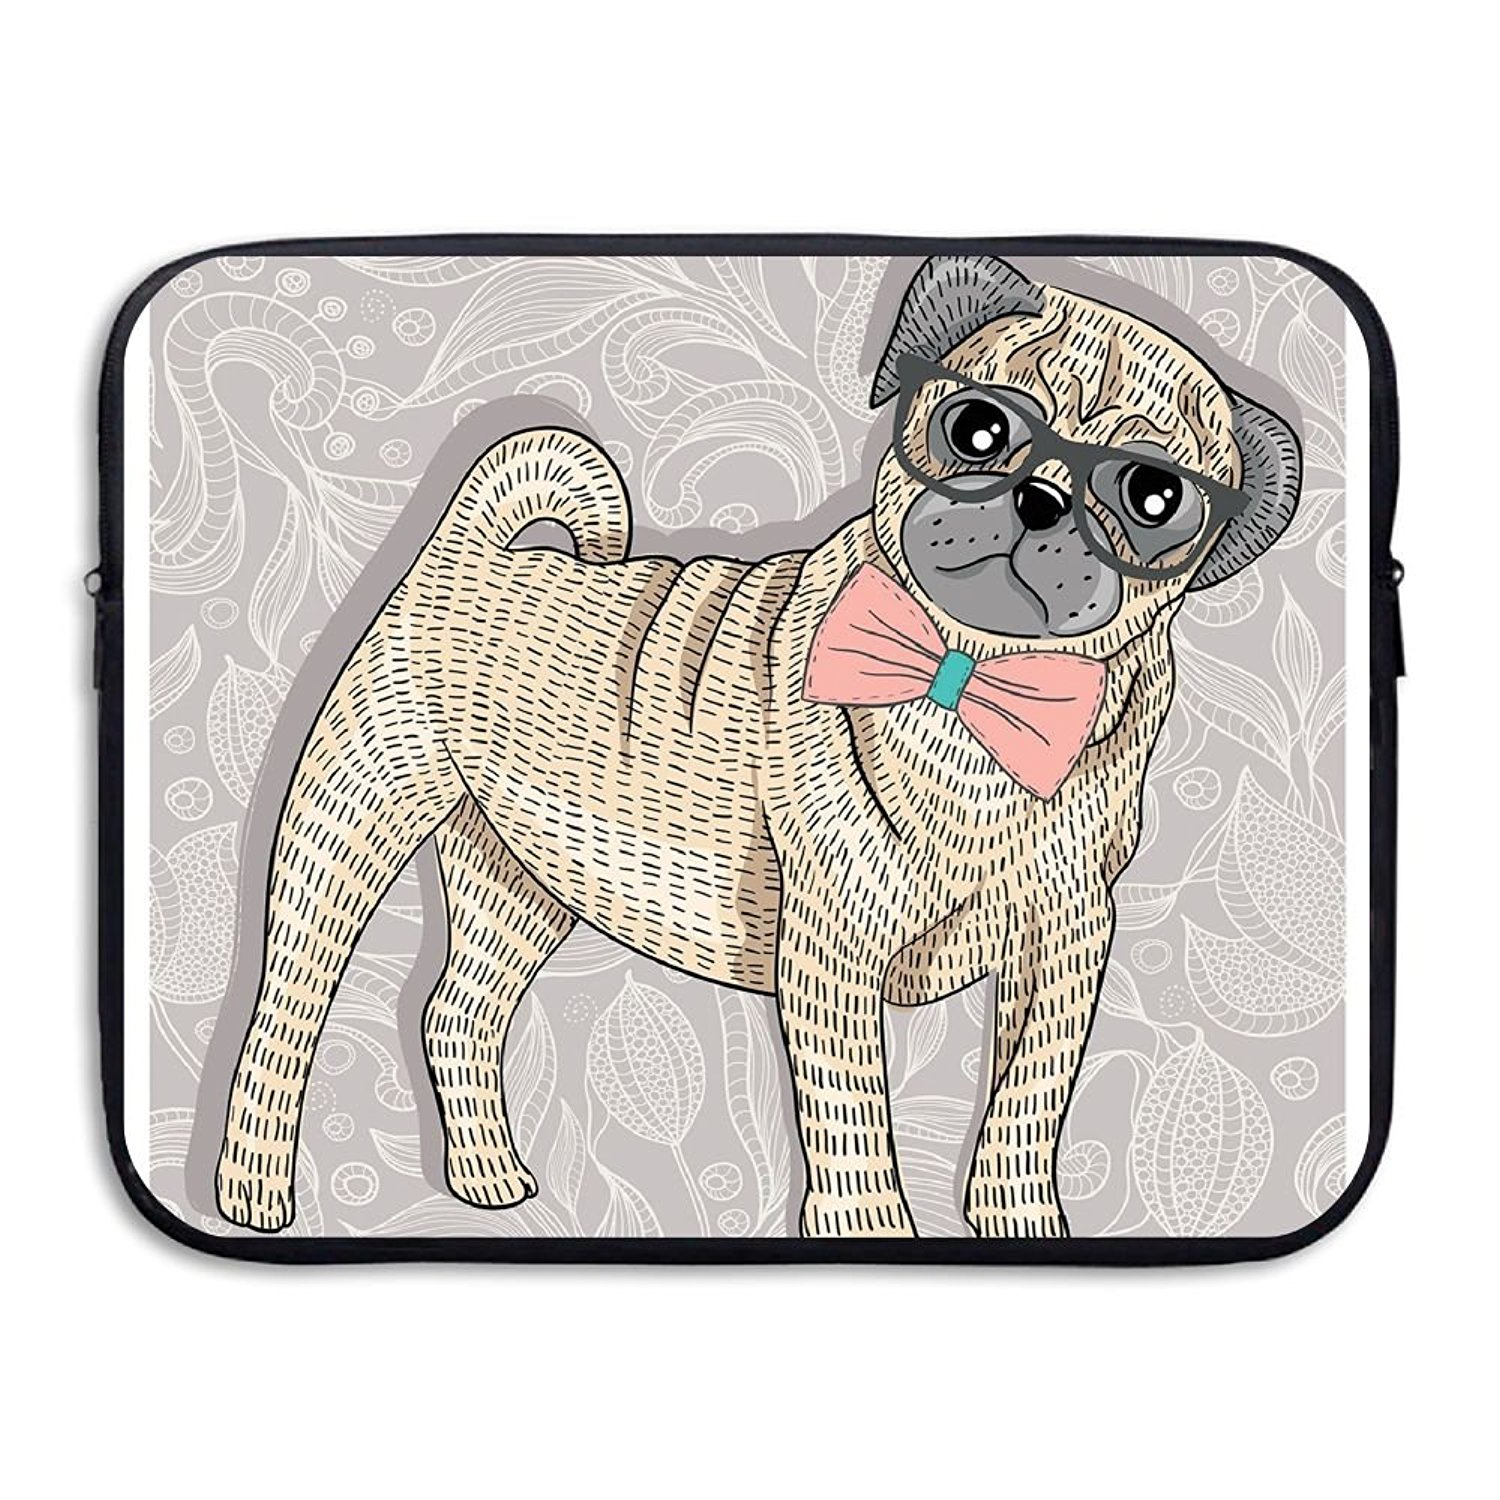 c7418a4e8d8e Buy XINSHOU Womens Hipster Pug With Nerdy Glasses And Bow Tie ...